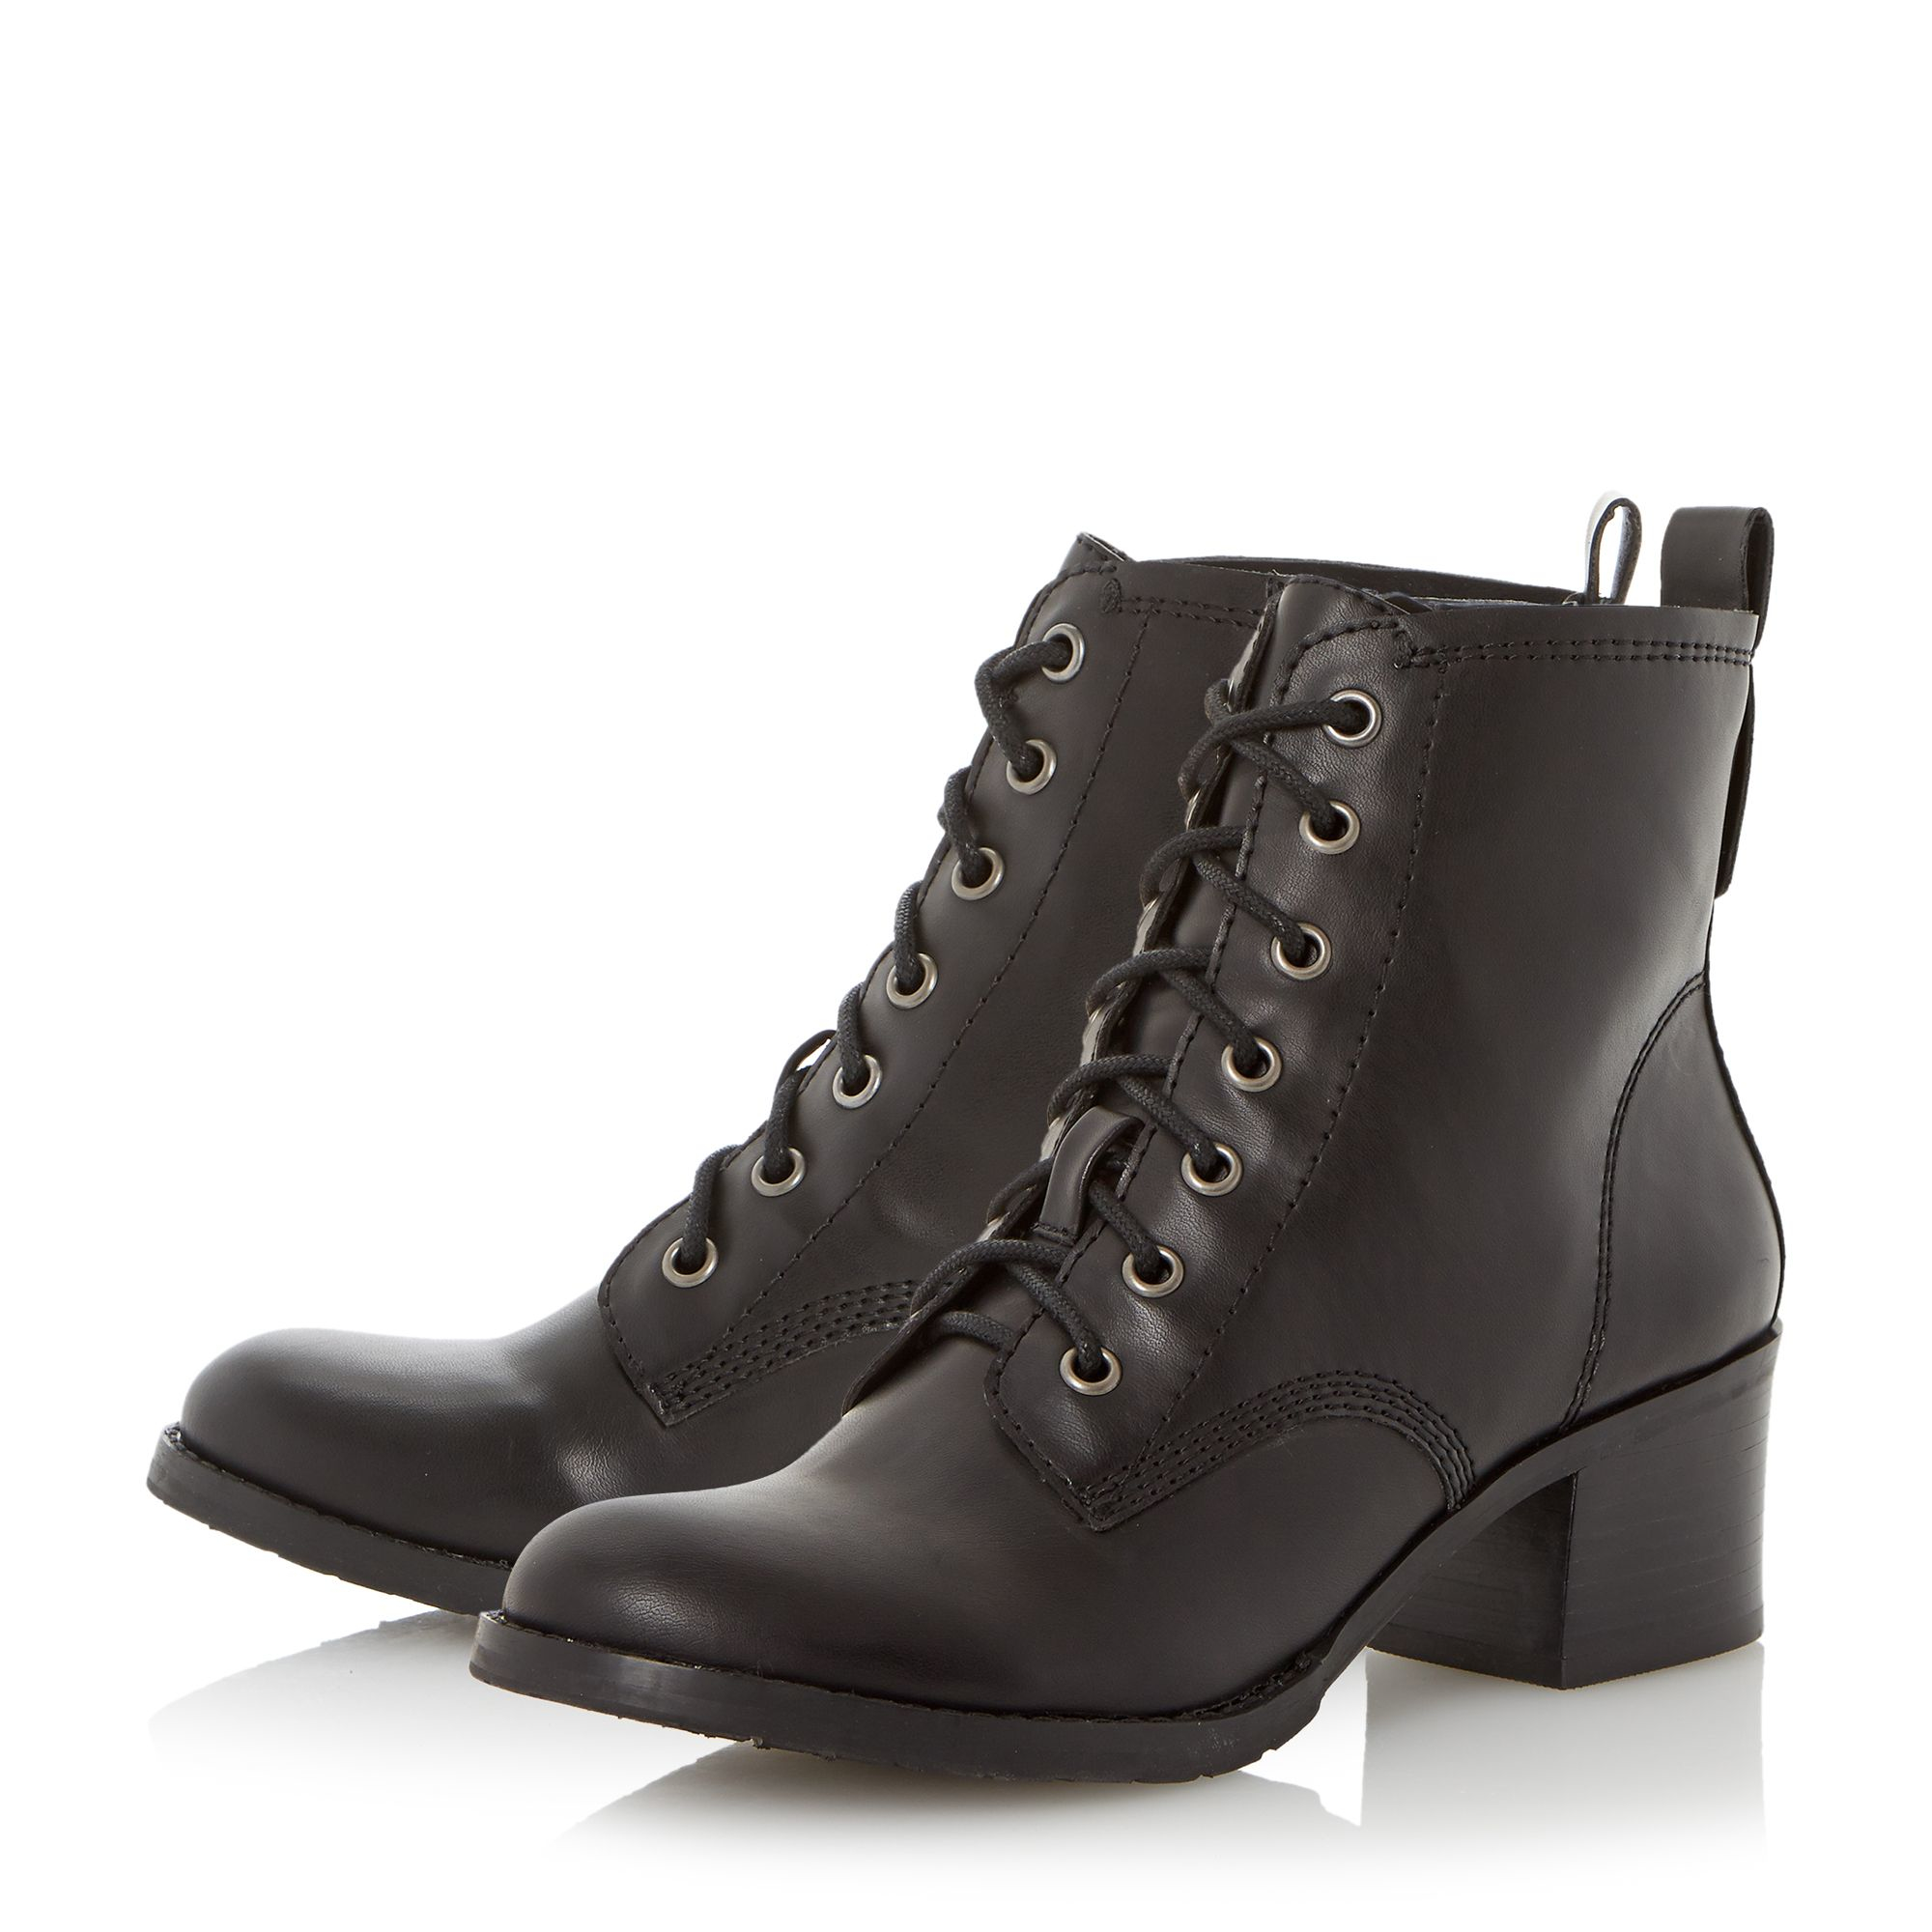 Dune Peppo Lace Up Block Heel Boots in Black | Lyst